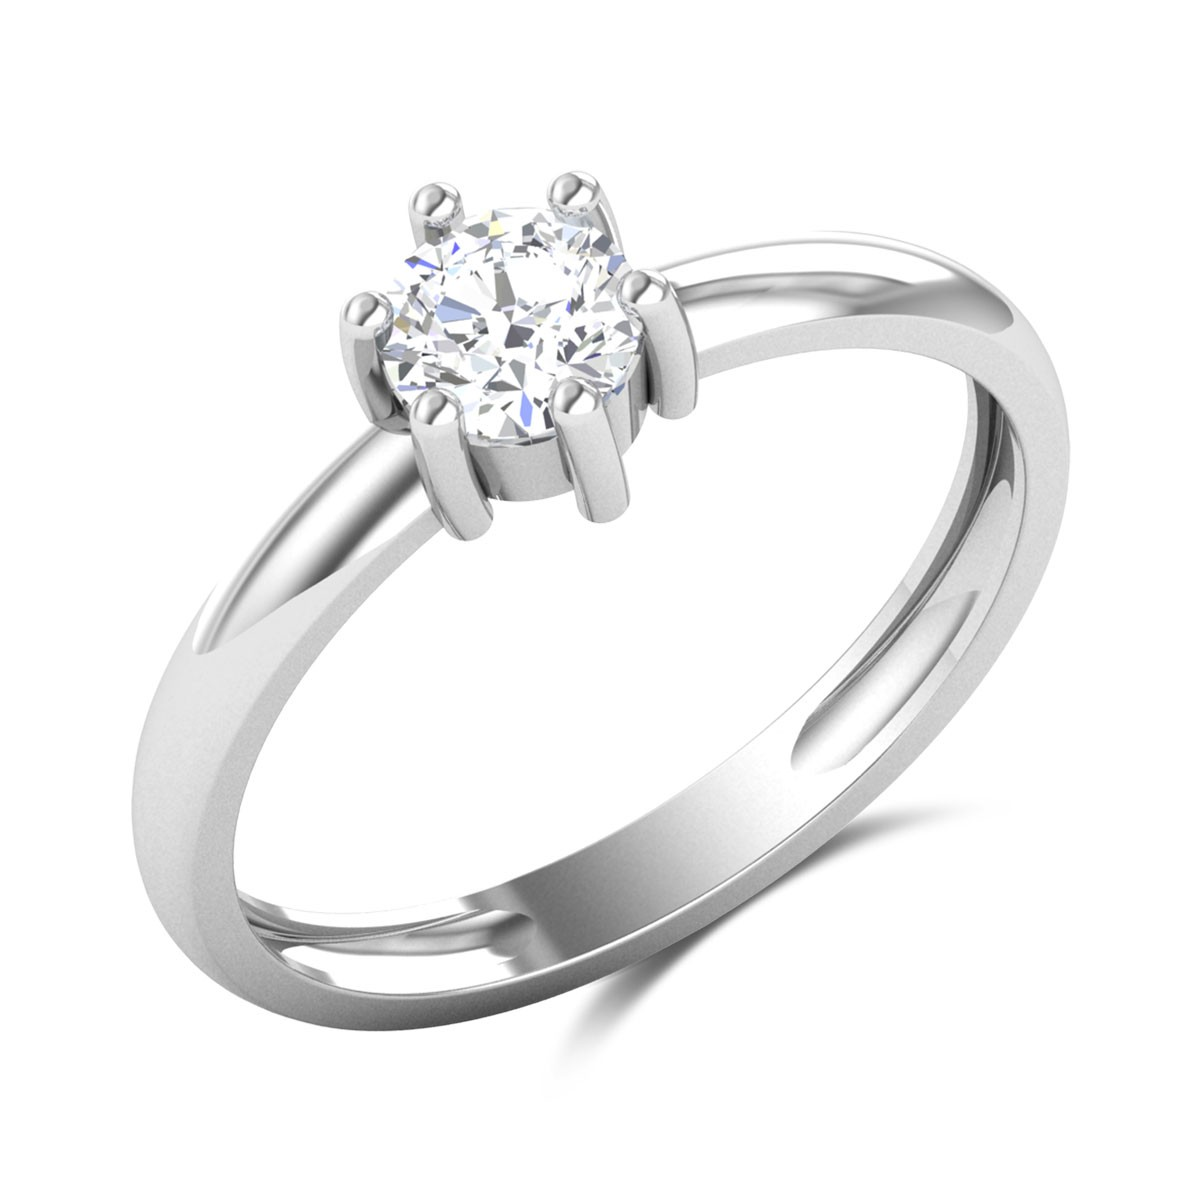 Alastair 6 Prong Solitaire Ring